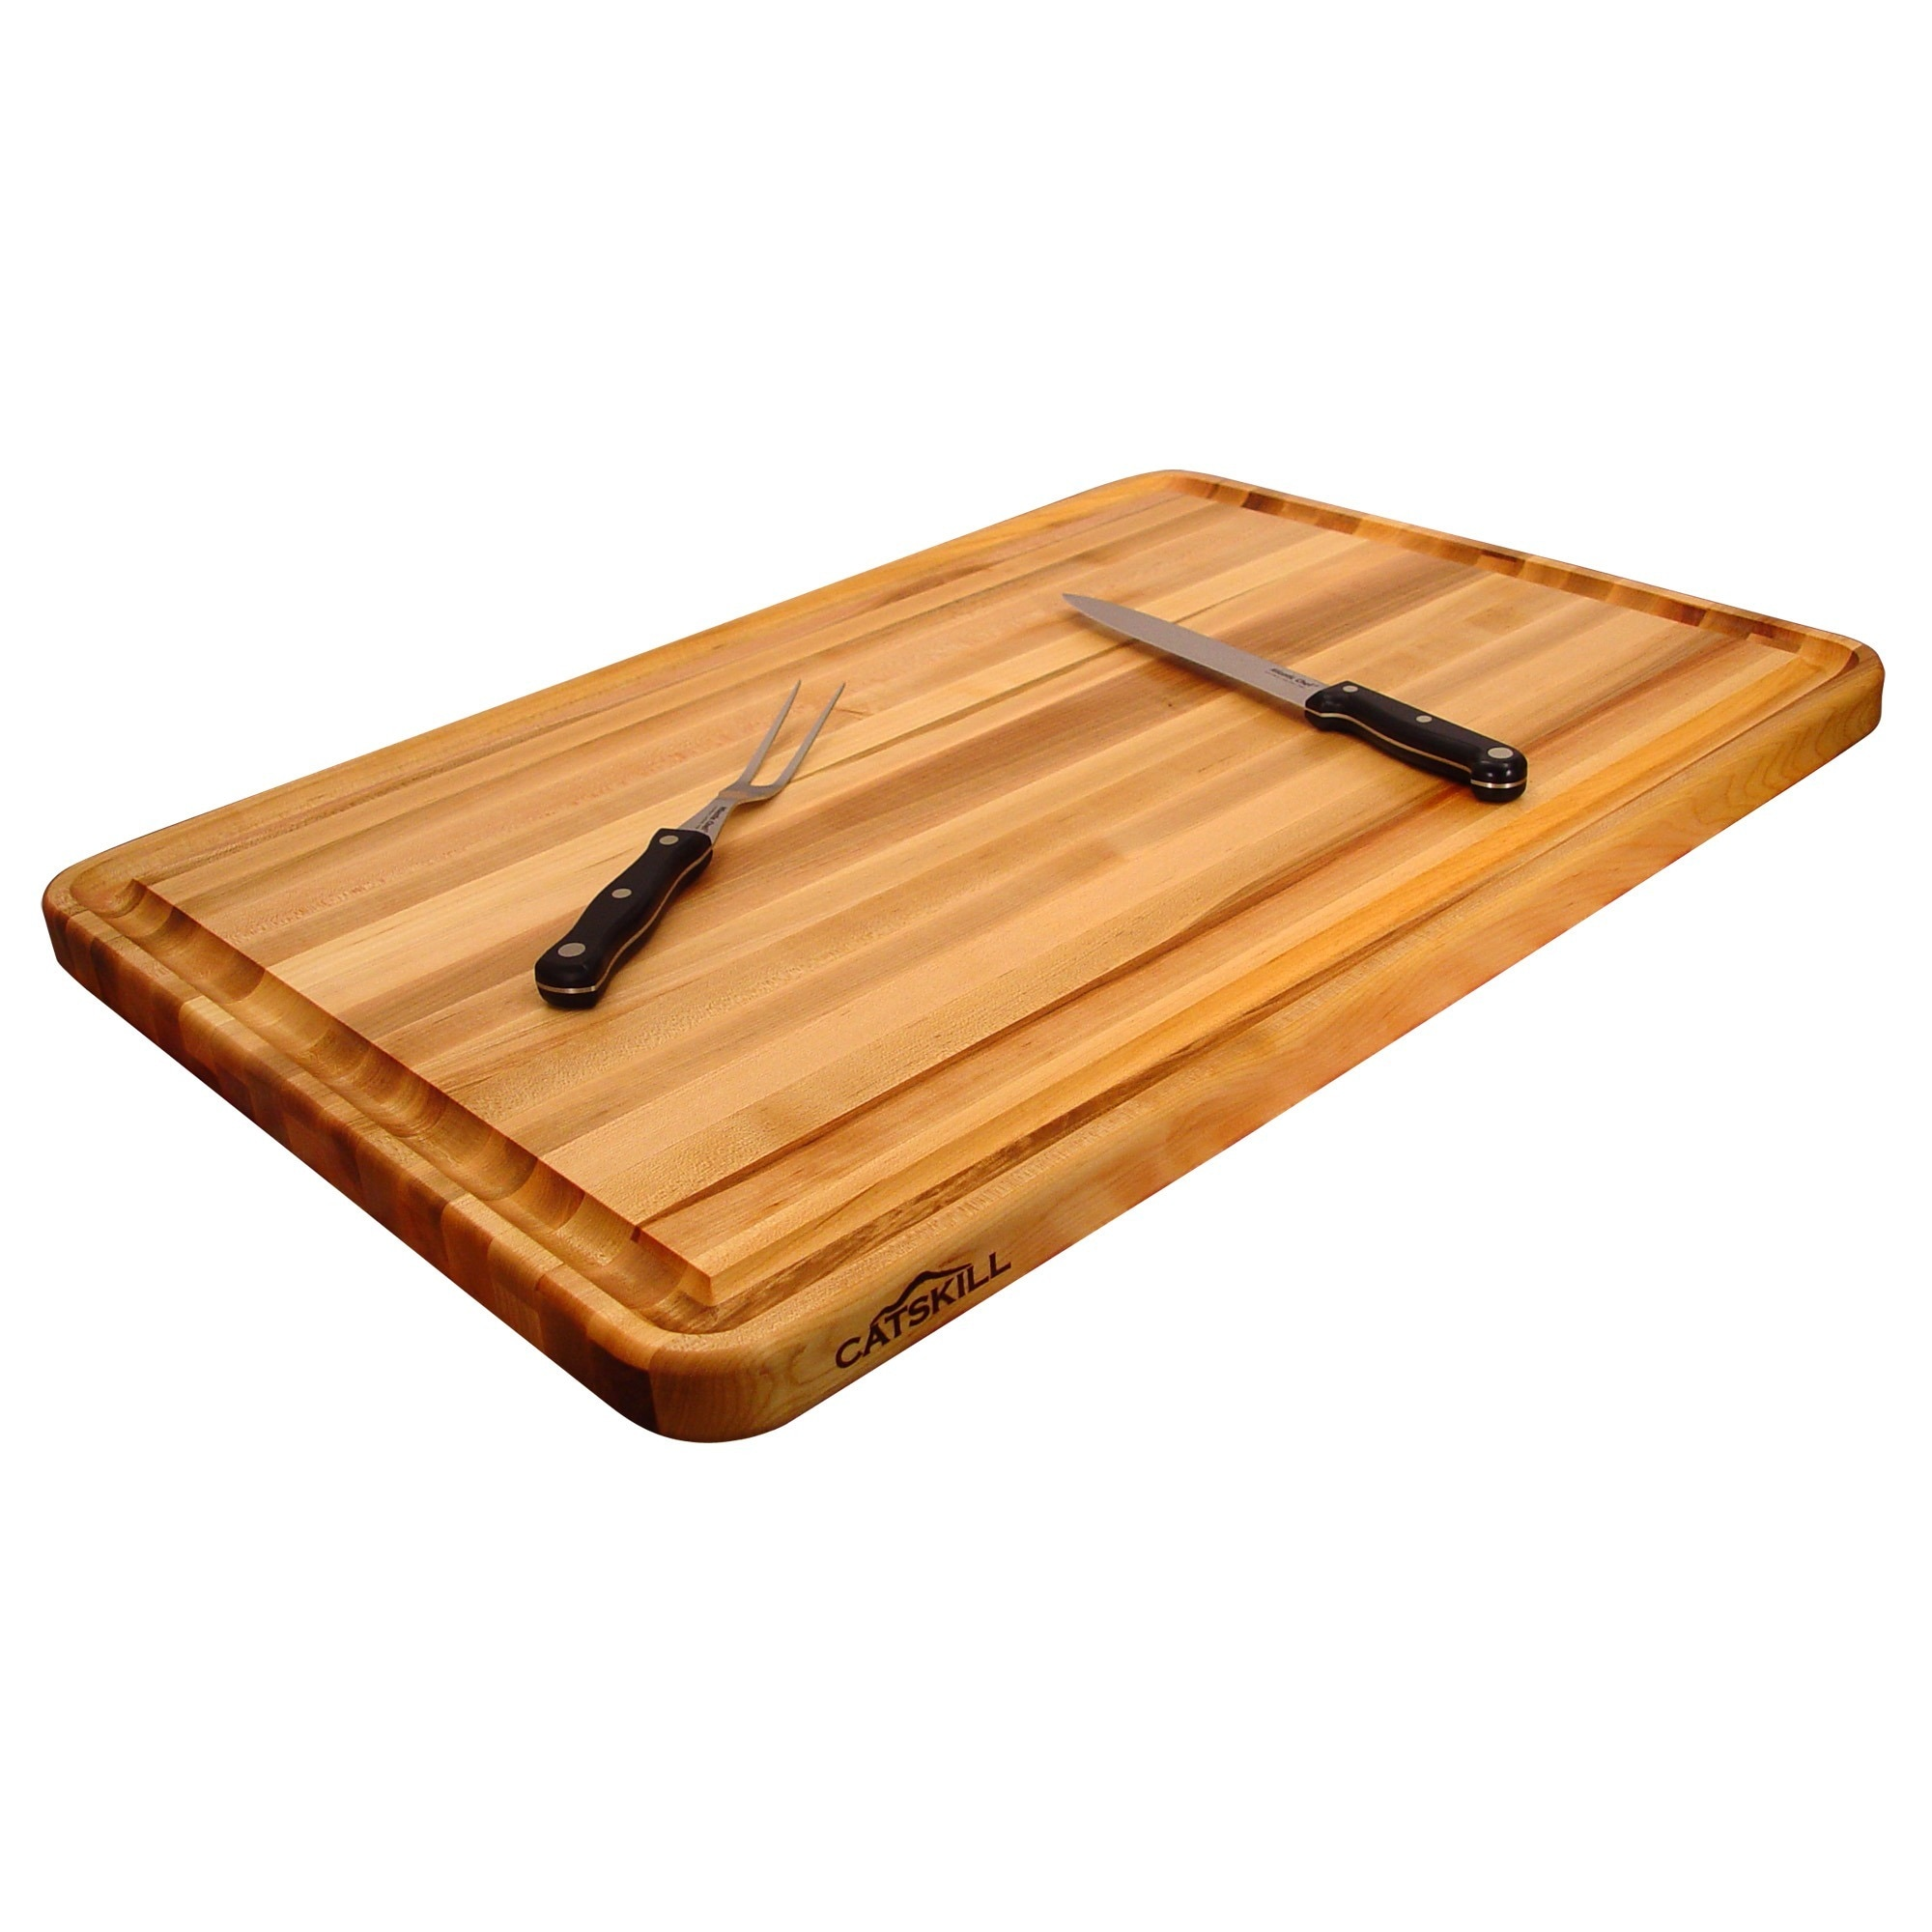 Professional Style Large Reversible Cutting Board w/ Juic...